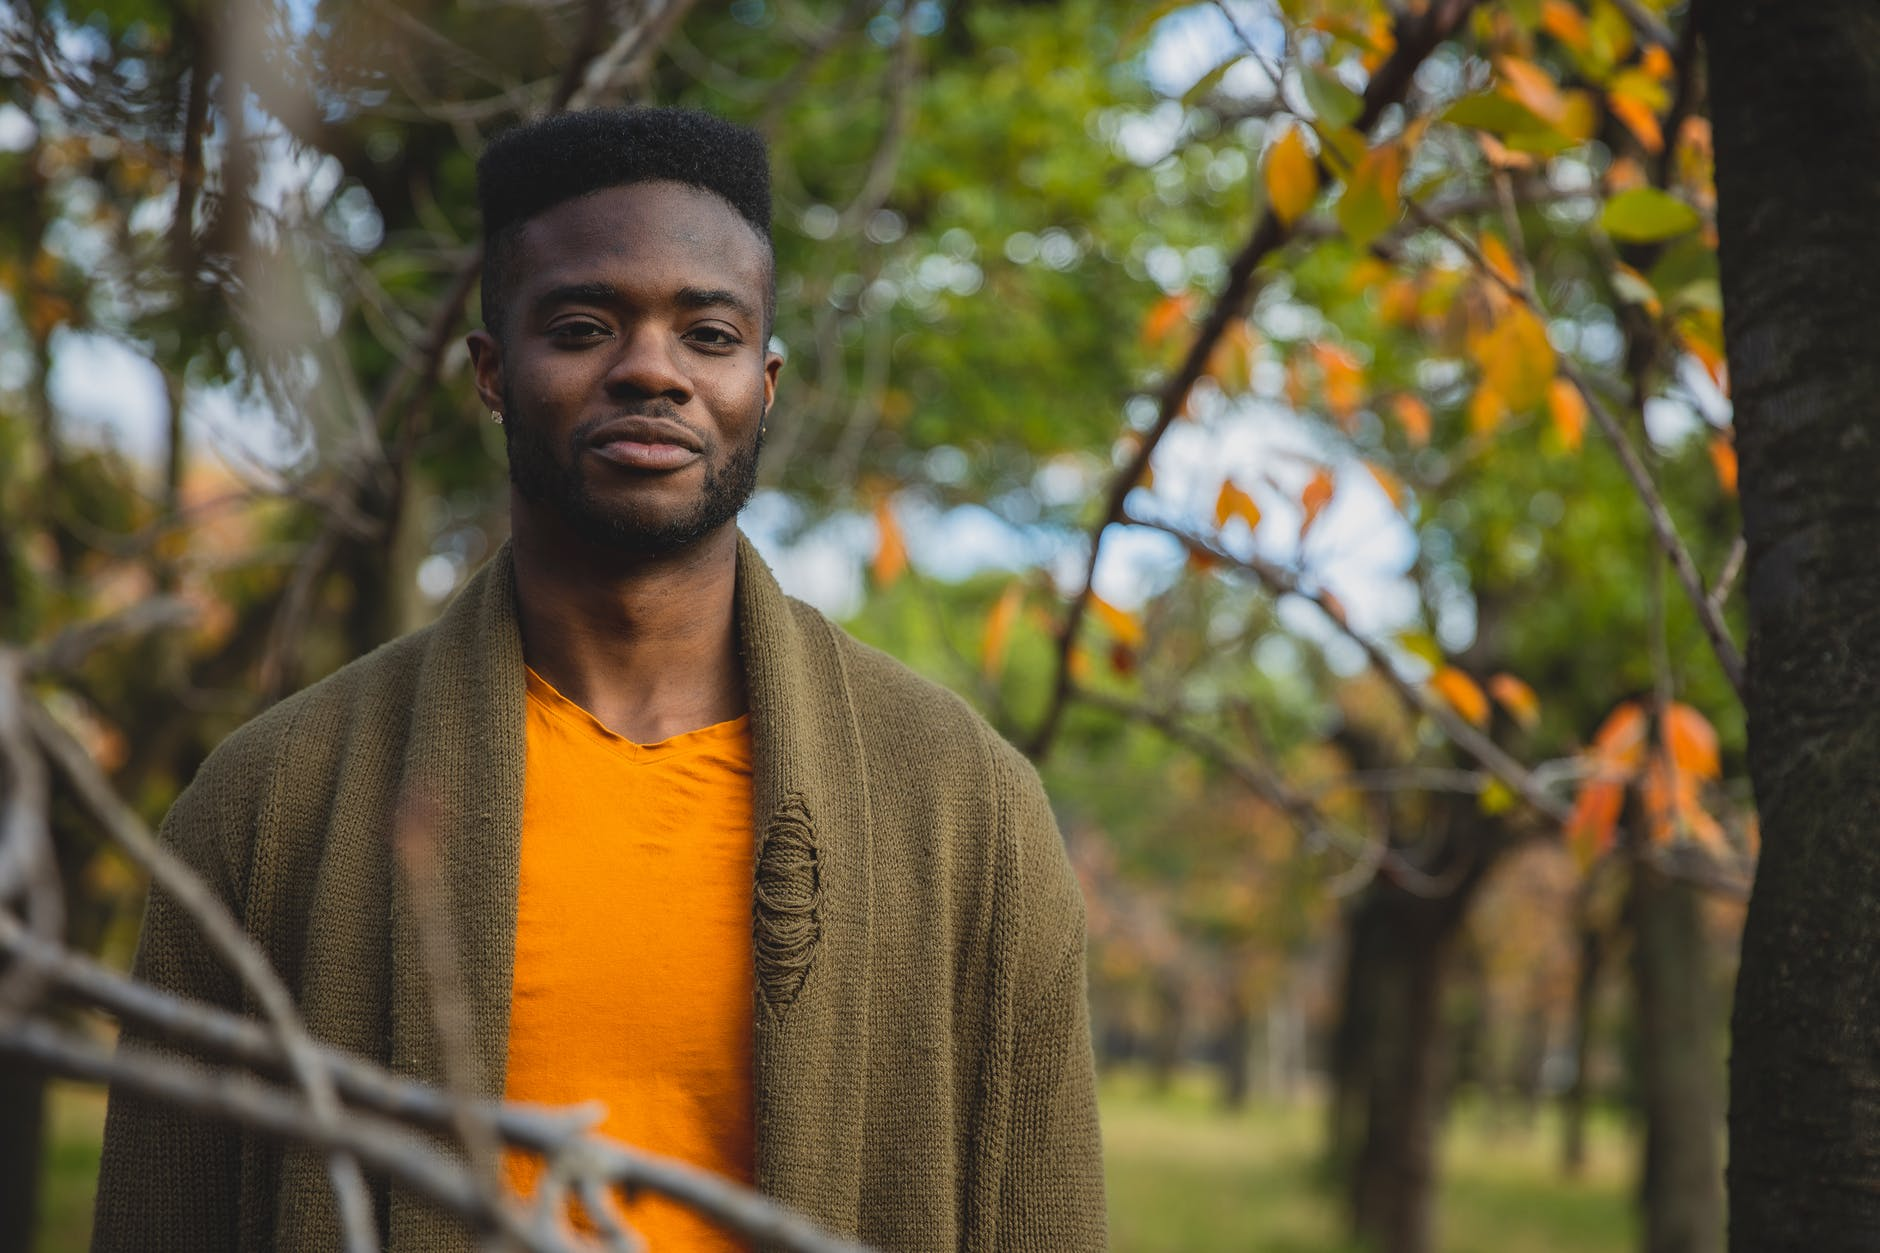 smiling young ethnic male standing in autumnal garden near bright trees